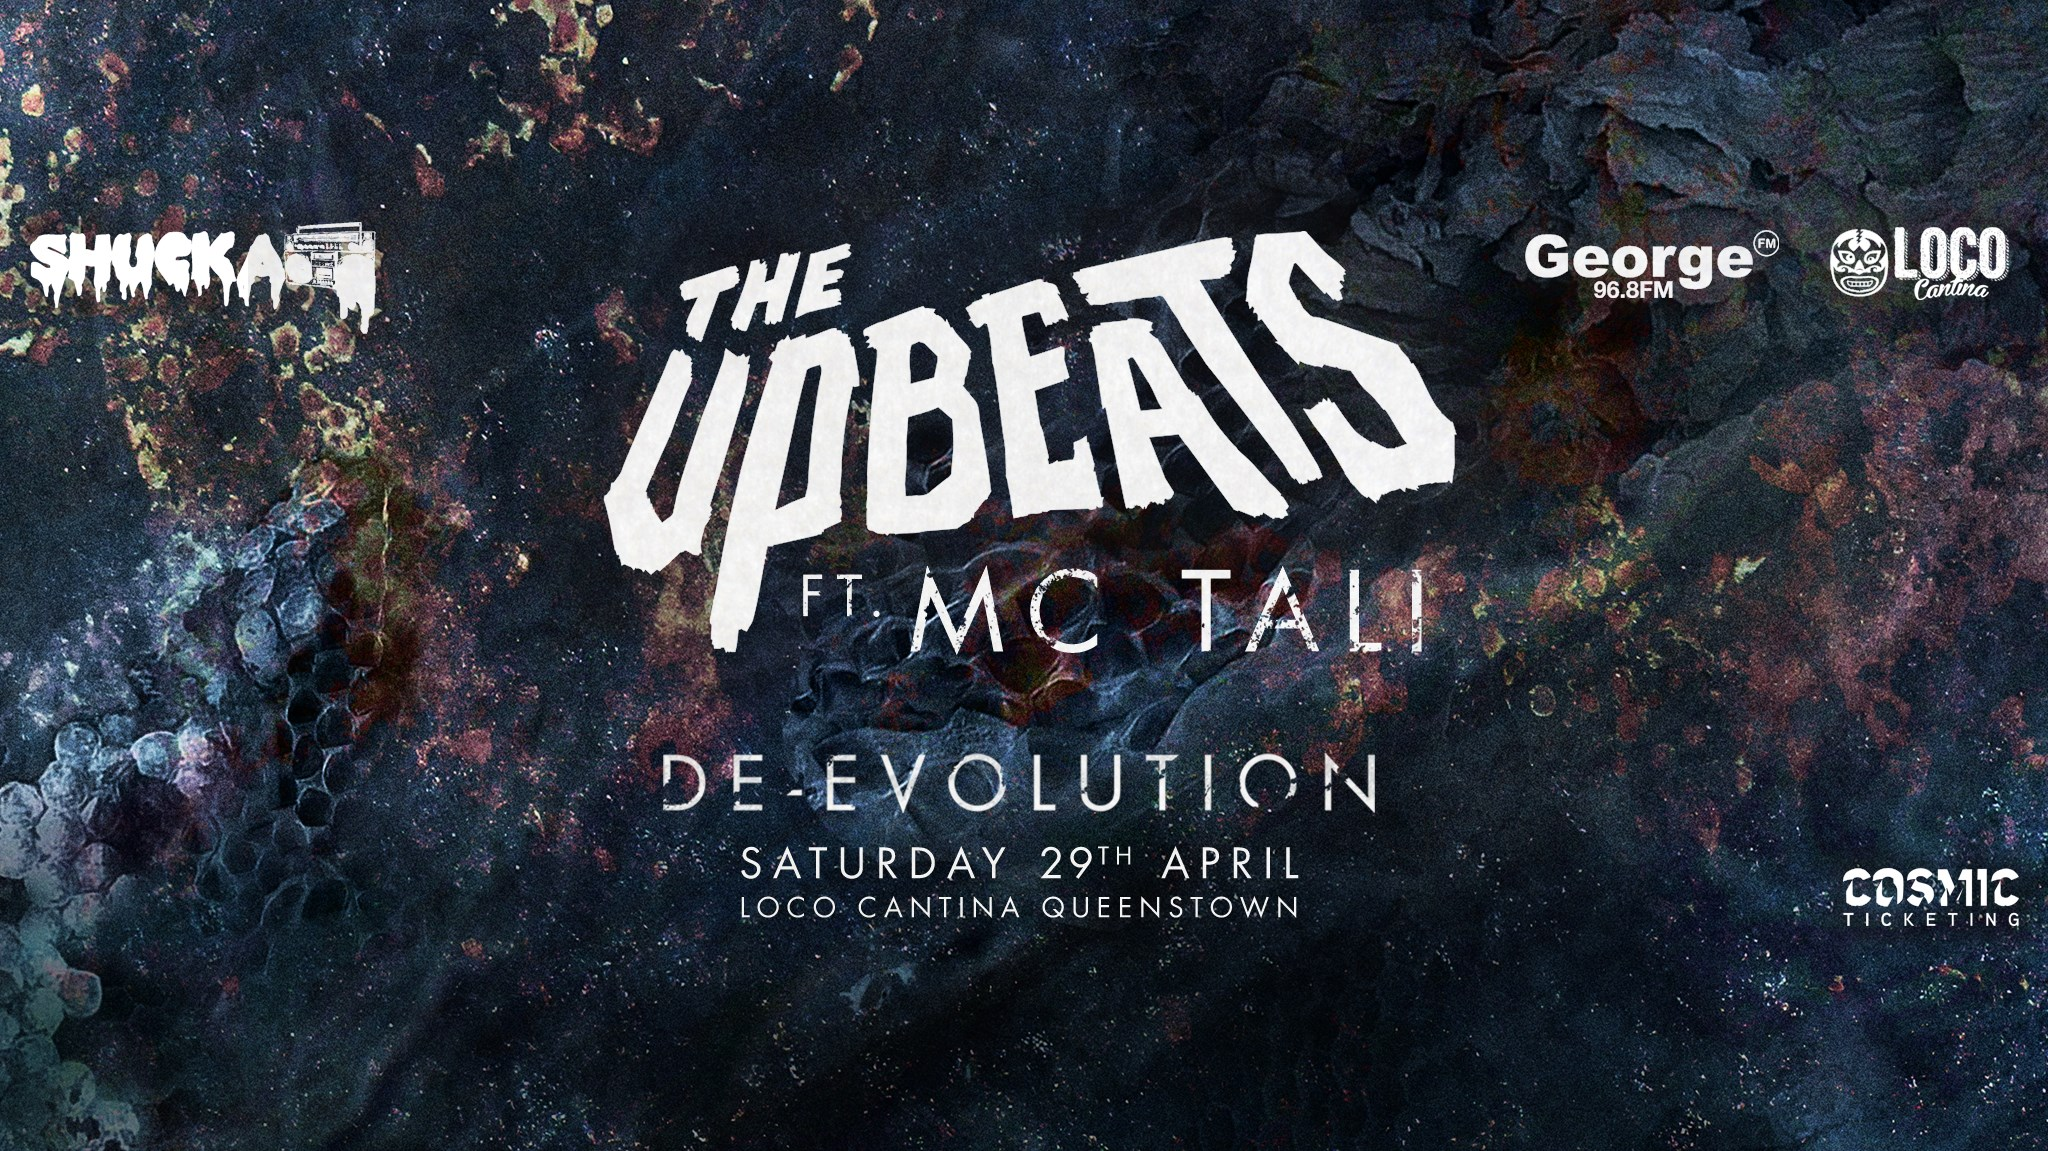 The Upbeats Ft MC Tali